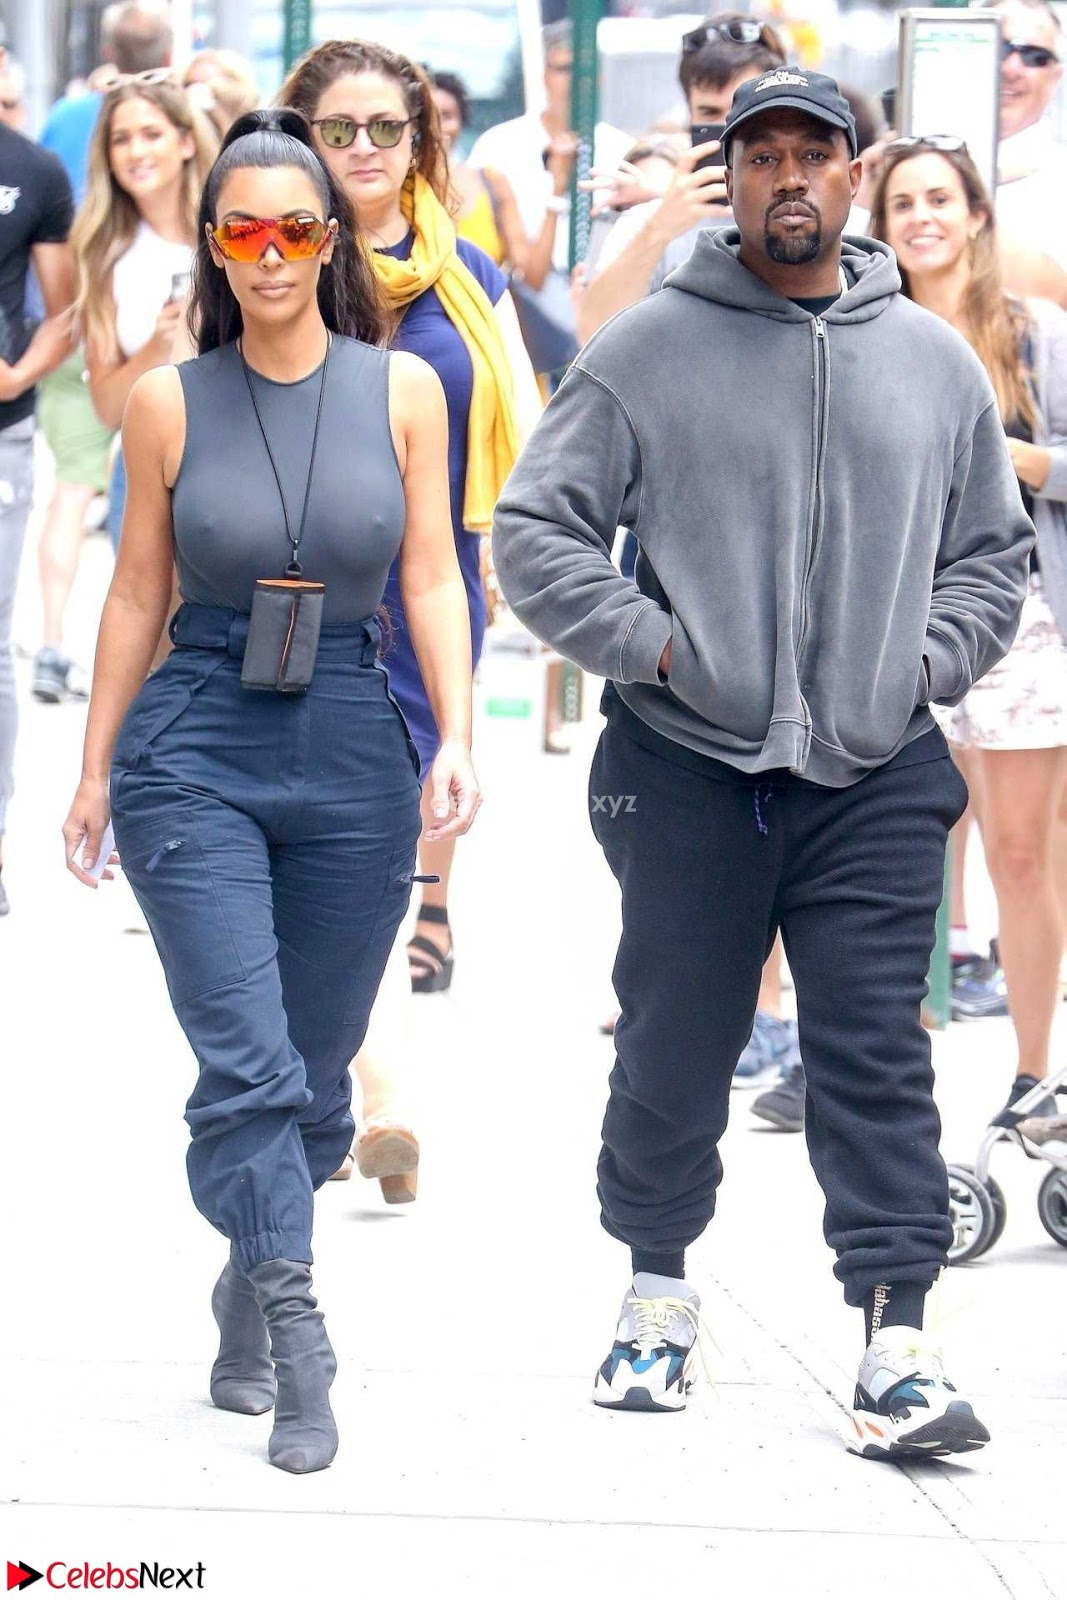 Kim Kardashian hard nipples visible form Tight T-Shirt Nipple Pokies Tits huge ~ CelebsNext.xyz Exclusive Celebrity Pics